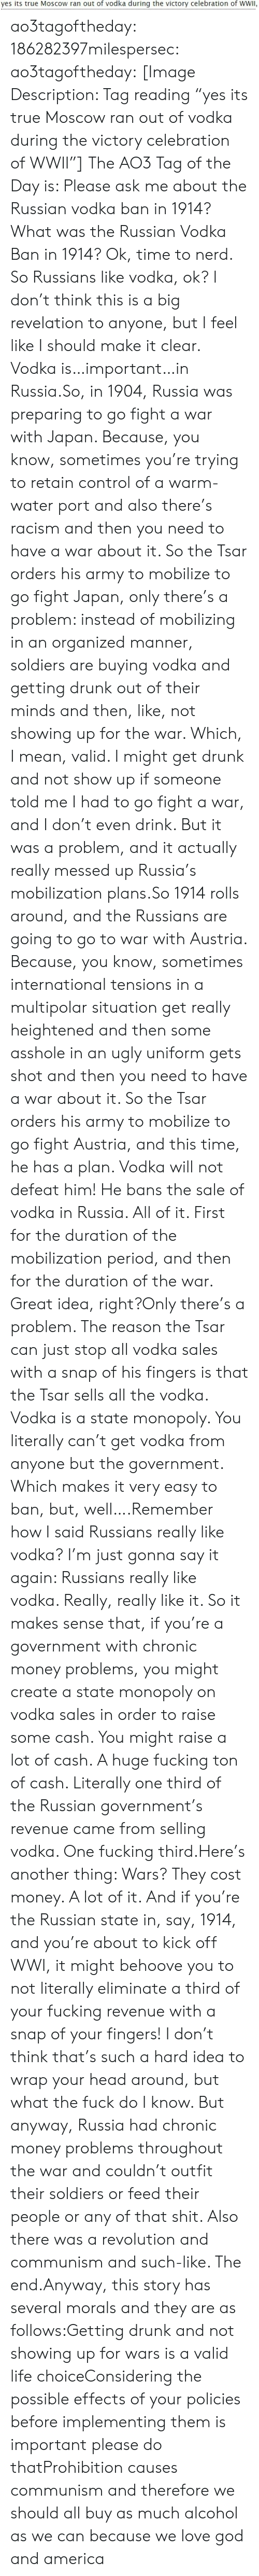 "Please Do: yes its true Moscow ran out of vodka during the victory celebration of WWII, ao3tagoftheday:  186282397milespersec:  ao3tagoftheday:  [Image Description: Tag reading ""yes its true Moscow ran out of vodka during the victory celebration of WWII""]  The AO3 Tag of the Day is: Please ask me about the Russian vodka ban in 1914?   What was the Russian Vodka Ban in 1914?  Ok, time to nerd. So Russians like vodka, ok? I don't think this is a big revelation to anyone, but I feel like I should make it clear. Vodka is…important…in Russia.So, in 1904, Russia was preparing to go fight a war with Japan. Because, you know, sometimes you're trying to retain control of a warm-water port and also there's racism and then you need to have a war about it. So the Tsar orders his army to mobilize to go fight Japan, only there's a problem: instead of mobilizing in an organized manner, soldiers are buying vodka and getting drunk out of their minds and then, like, not showing up for the war. Which, I mean, valid. I might get drunk and not show up if someone told me I had to go fight a war, and I don't even drink. But it was a problem, and it actually really messed up Russia's mobilization plans.So 1914 rolls around, and the Russians are going to go to war with Austria. Because, you know, sometimes international tensions in a multipolar situation get really heightened and then some asshole in an ugly uniform gets shot and then you need to have a war about it. So the Tsar orders his army to mobilize to go fight Austria, and this time, he has a plan. Vodka will not defeat him! He bans the sale of vodka in Russia. All of it. First for the duration of the mobilization period, and then for the duration of the war. Great idea, right?Only there's a problem. The reason the Tsar can just stop all vodka sales with a snap of his fingers is that the Tsar sells all the vodka. Vodka is a state monopoly. You literally can't get vodka from anyone but the government. Which makes it very easy to ban, but, well….Remember how I said Russians really like vodka? I'm just gonna say it again: Russians really like vodka. Really, really like it. So it makes sense that, if you're a government with chronic money problems, you might create a state monopoly on vodka sales in order to raise some cash. You might raise a lot of cash. A huge fucking ton of cash. Literally one third of the Russian government's revenue came from selling vodka. One fucking third.Here's another thing: Wars? They cost money. A lot of it. And if you're the Russian state in, say, 1914, and you're about to kick off WWI, it might behoove you to not literally eliminate a third of your fucking revenue with a snap of your fingers! I don't think that's such a hard idea to wrap your head around, but what the fuck do I know. But anyway, Russia had chronic money problems throughout the war and couldn't outfit their soldiers or feed their people or any of that shit. Also there was a revolution and communism and such-like. The end.Anyway, this story has several morals and they are as follows:Getting drunk and not showing up for wars is a valid life choiceConsidering the possible effects of your policies before implementing them is important please do thatProhibition causes communism and therefore we should all buy as much alcohol as we can because we love god and america"